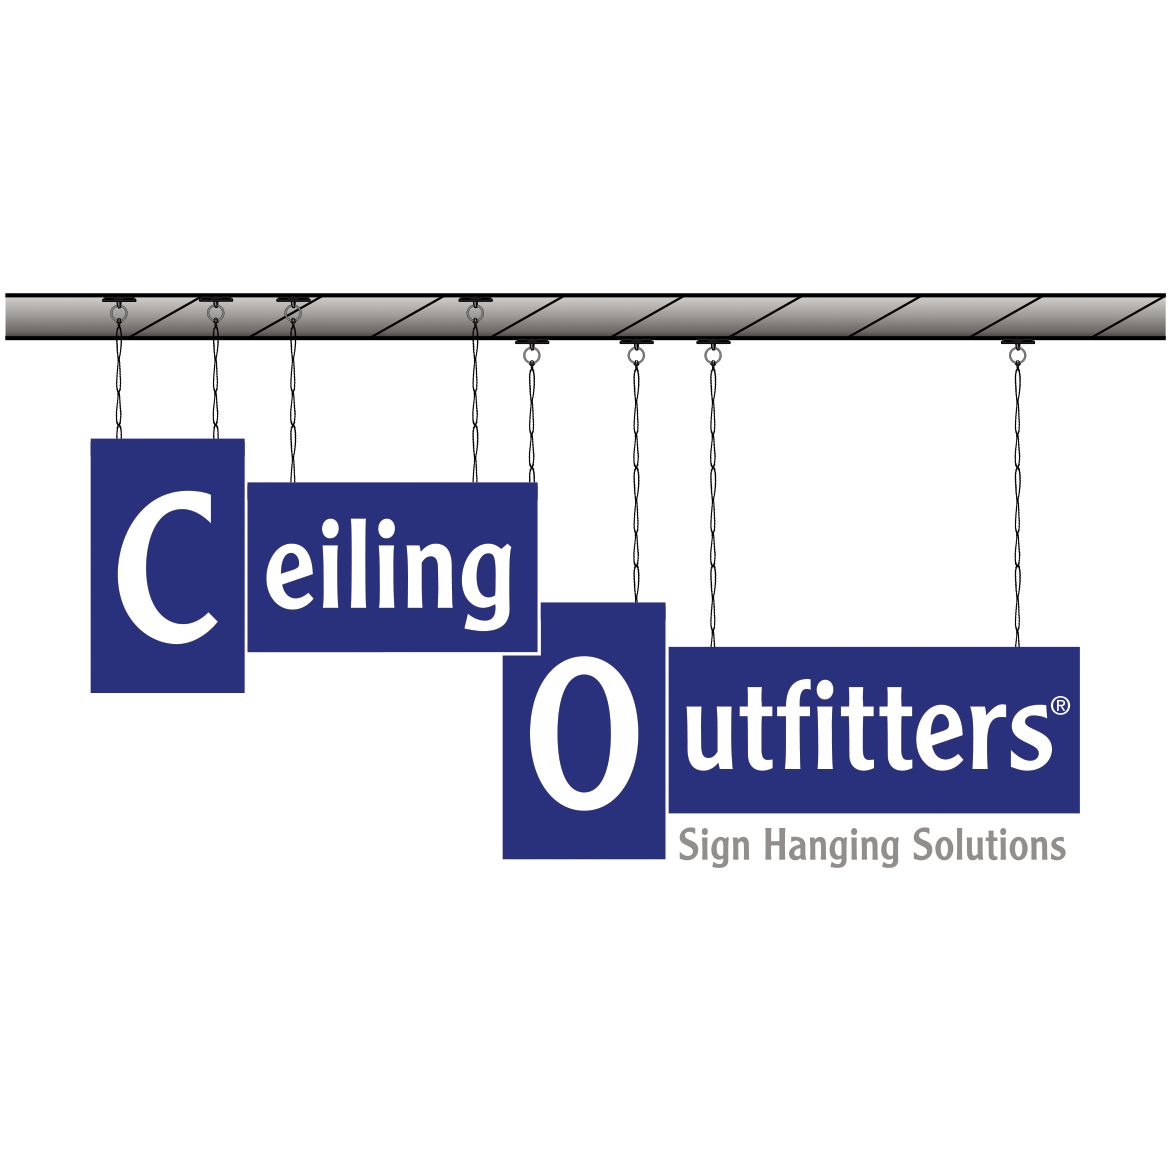 Ceiling Outfitters - Sign Hanging Solutions